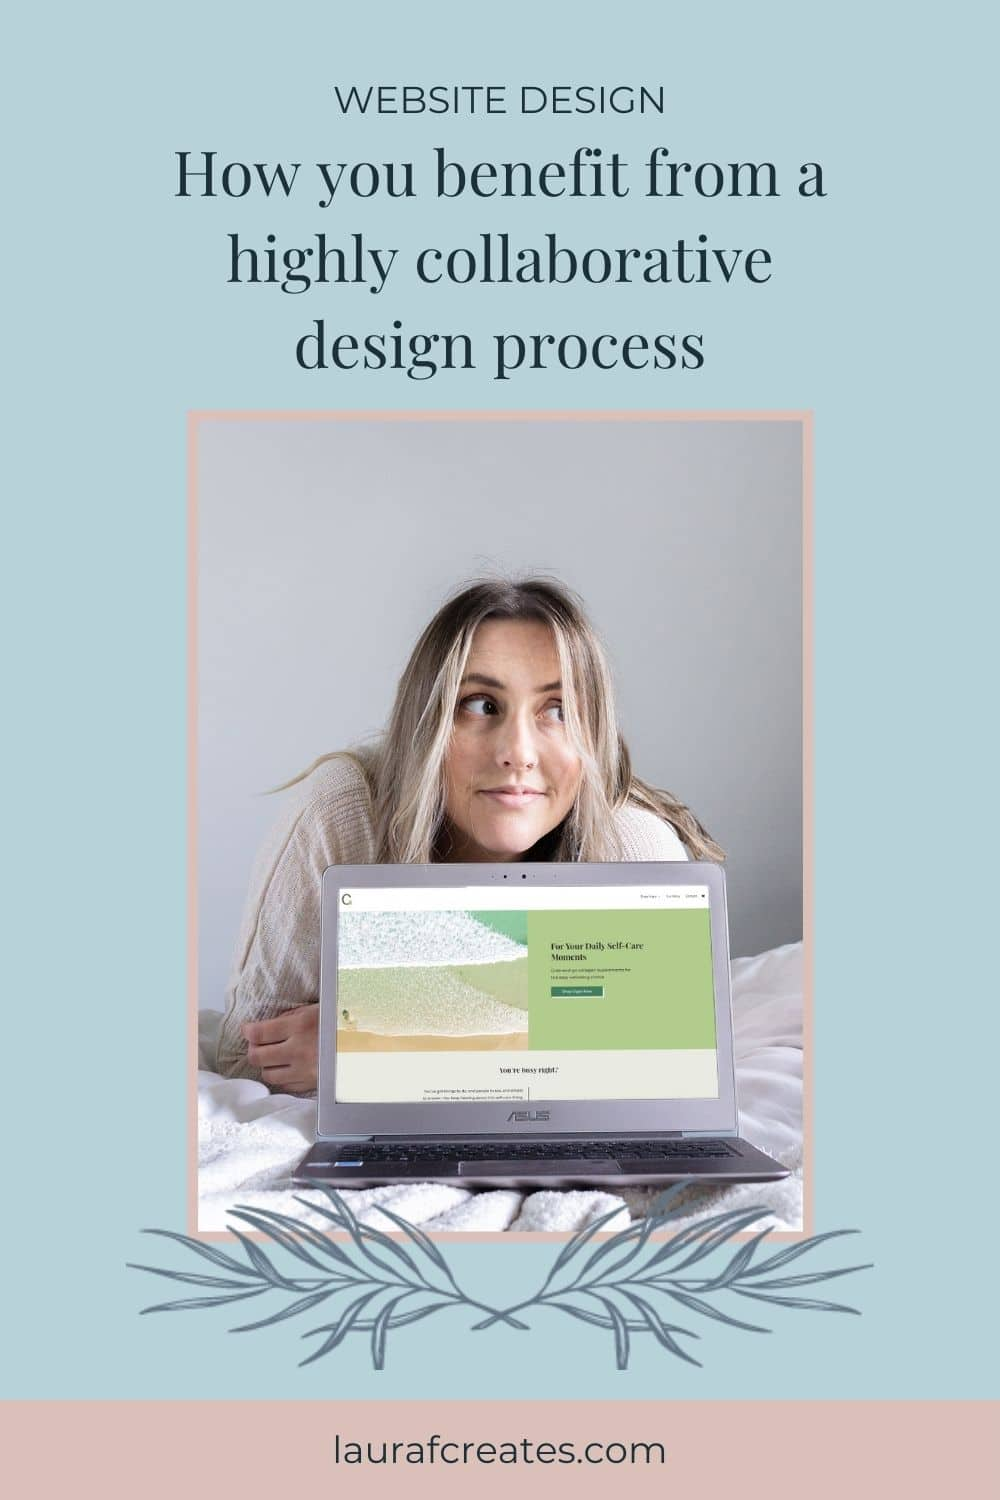 How can a highly collaborative website design process help you?